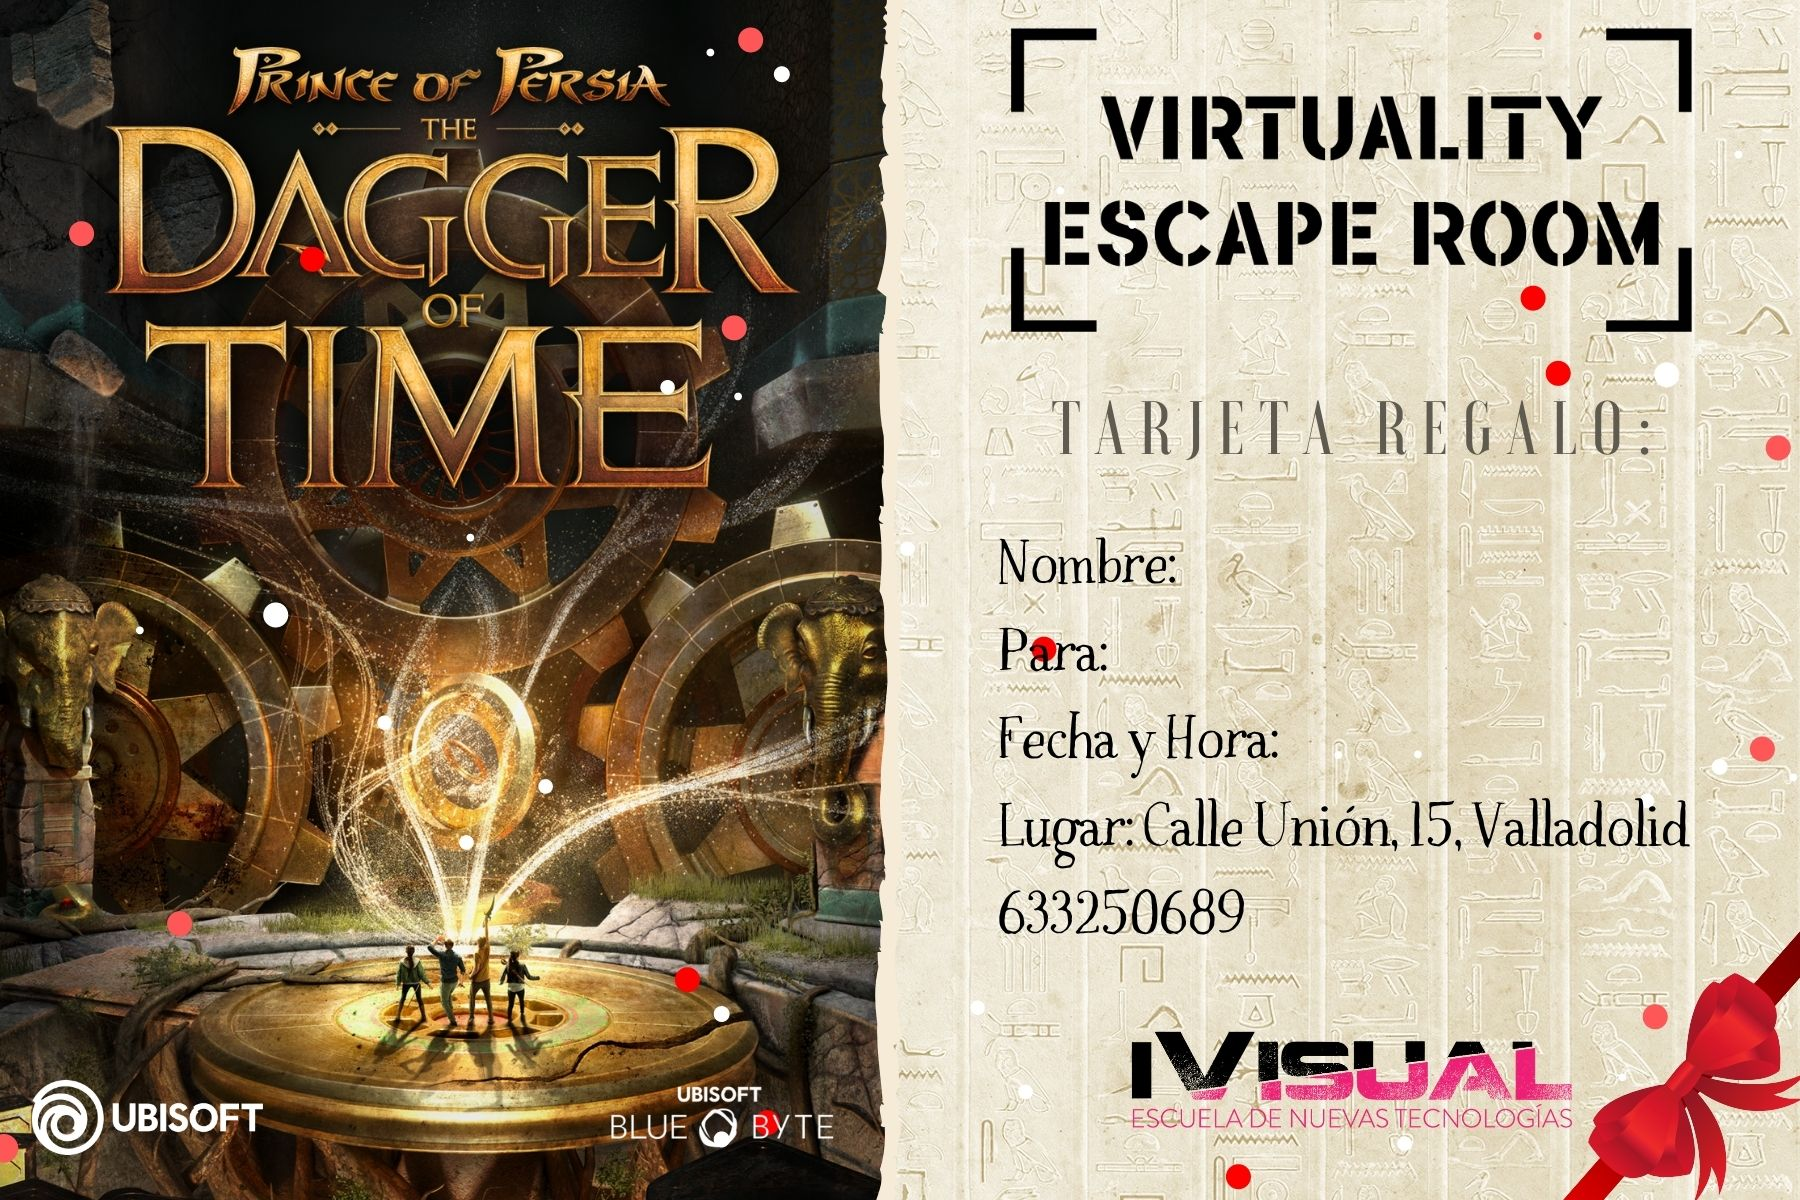 Tarjeta-regalo-Prince-Of-Persia-The-Dagger-Of-Time-Virtuality-Escape-Room